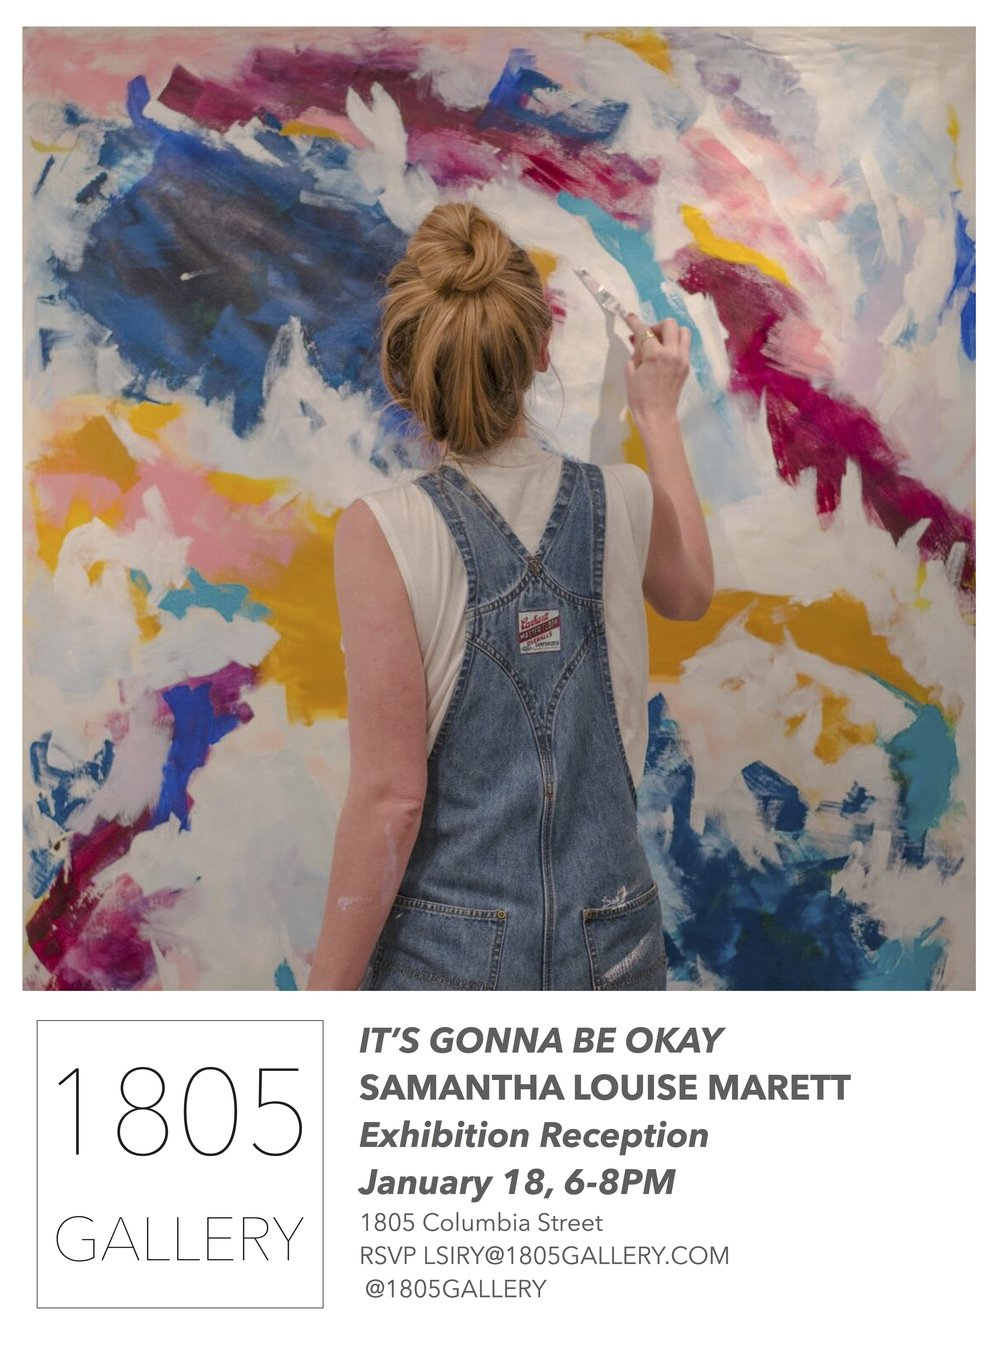 SAMANTHA LOUISE MARETT FLYER.jpg